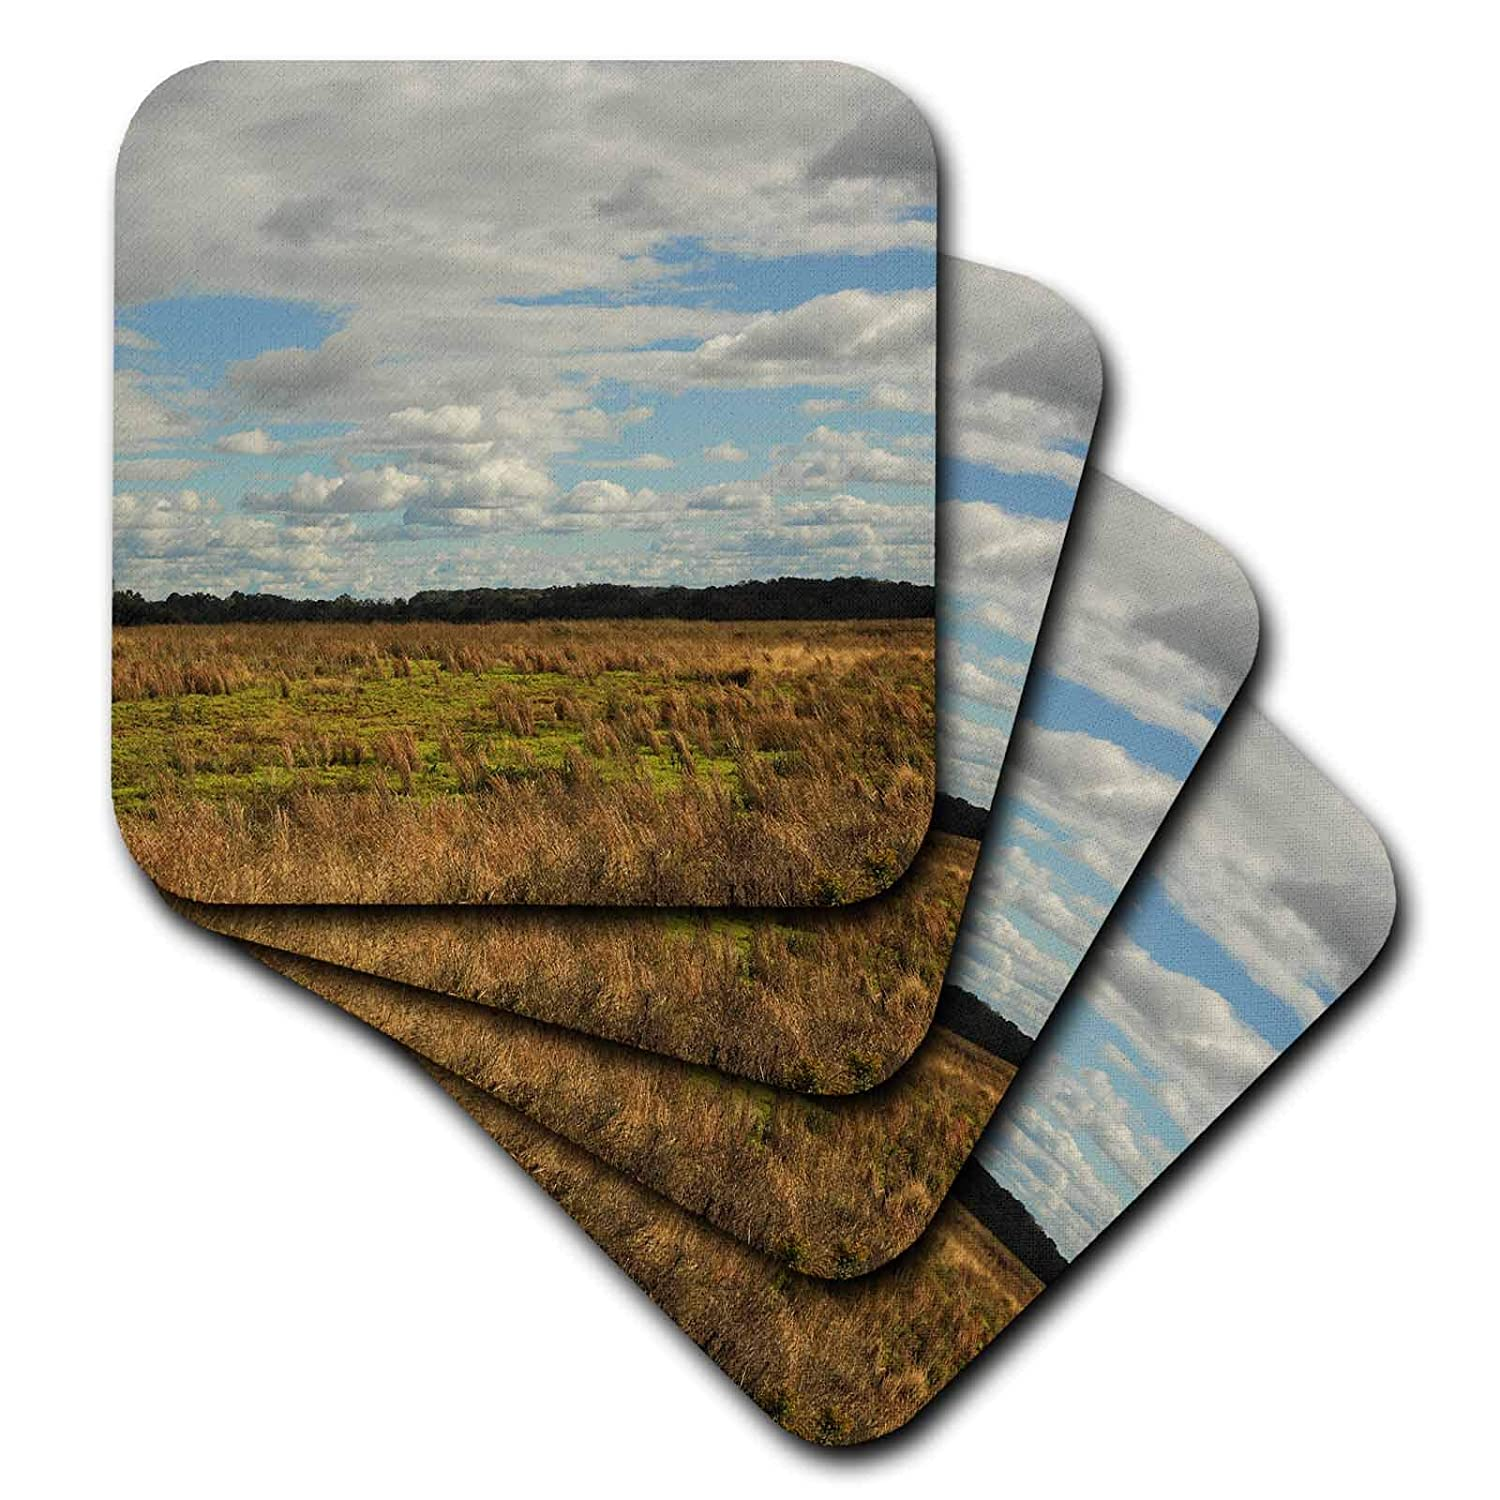 3dRose Stamp City - nature - Photograph of an open field in South Carolina on a cloudy day. - set of 8 Ceramic Tile Coasters (cst_302844_4)